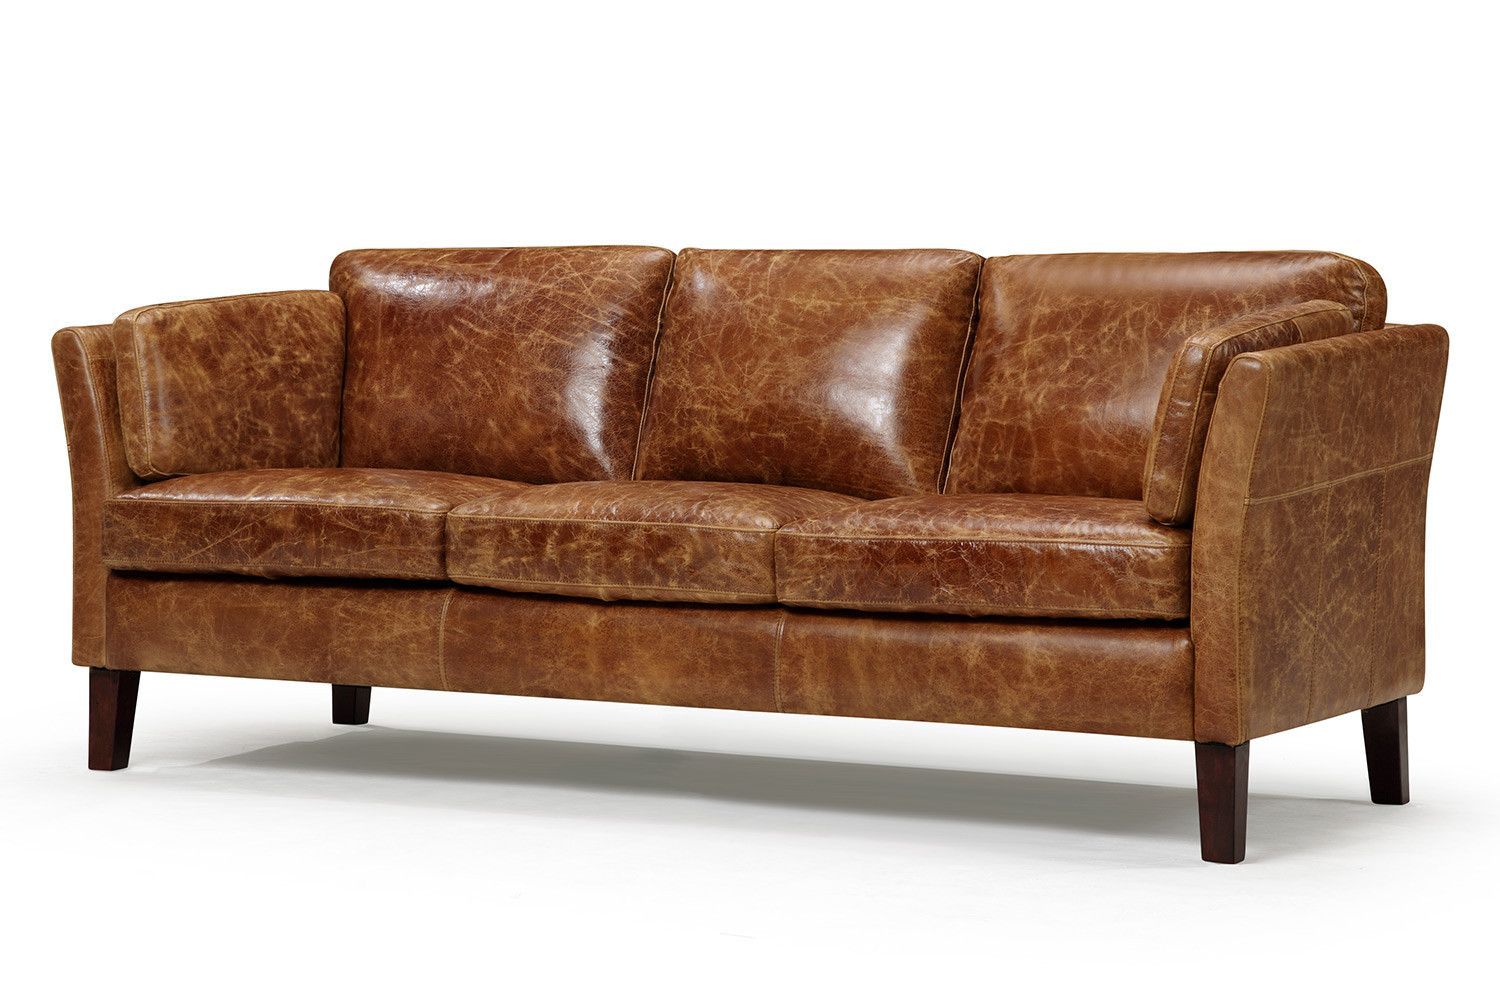 The Vintage 1960 Scandinavian Leather Sofa Ashley